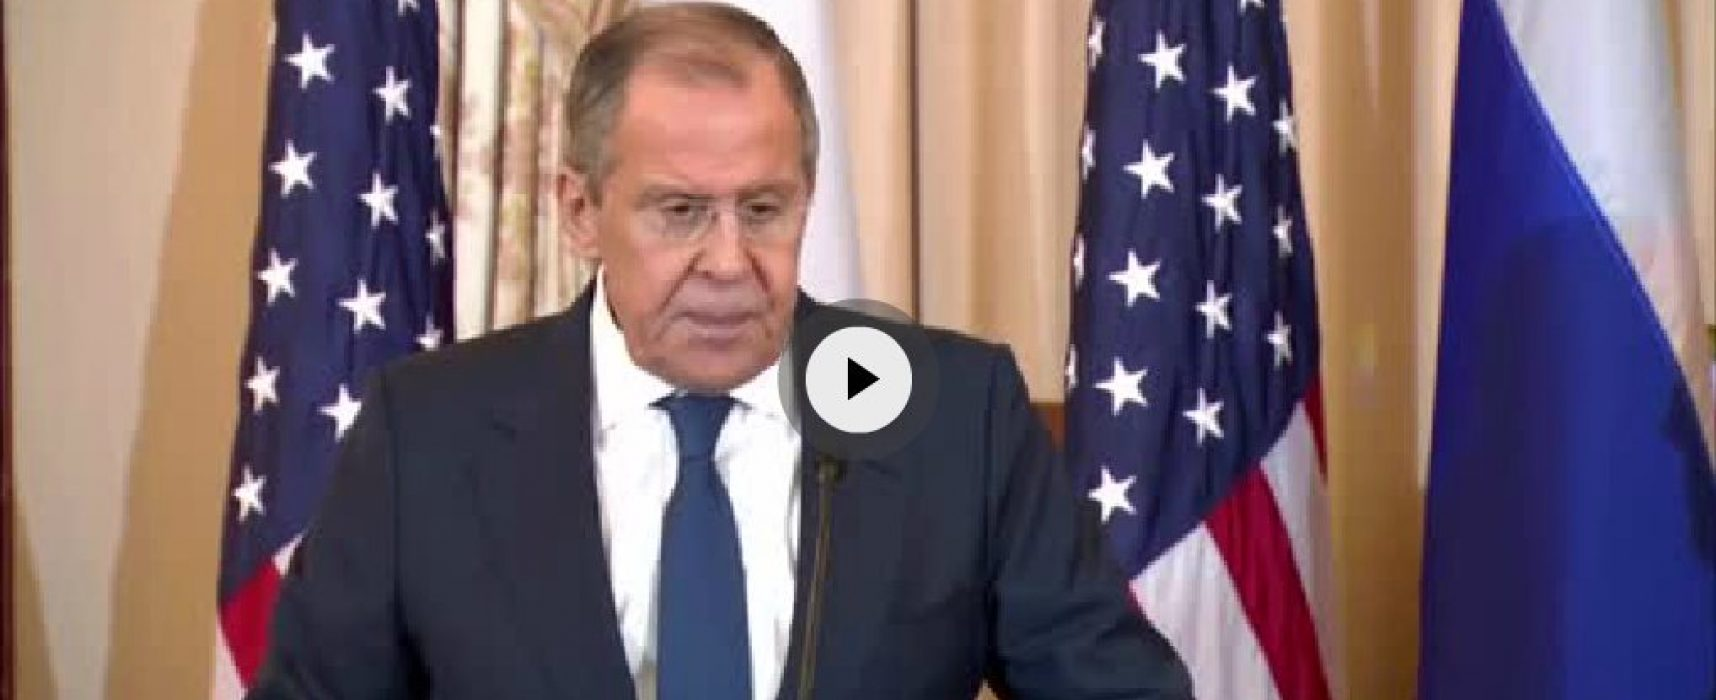 Russian Foreign Minister: 'Meddling or non-meddling… No collusion'